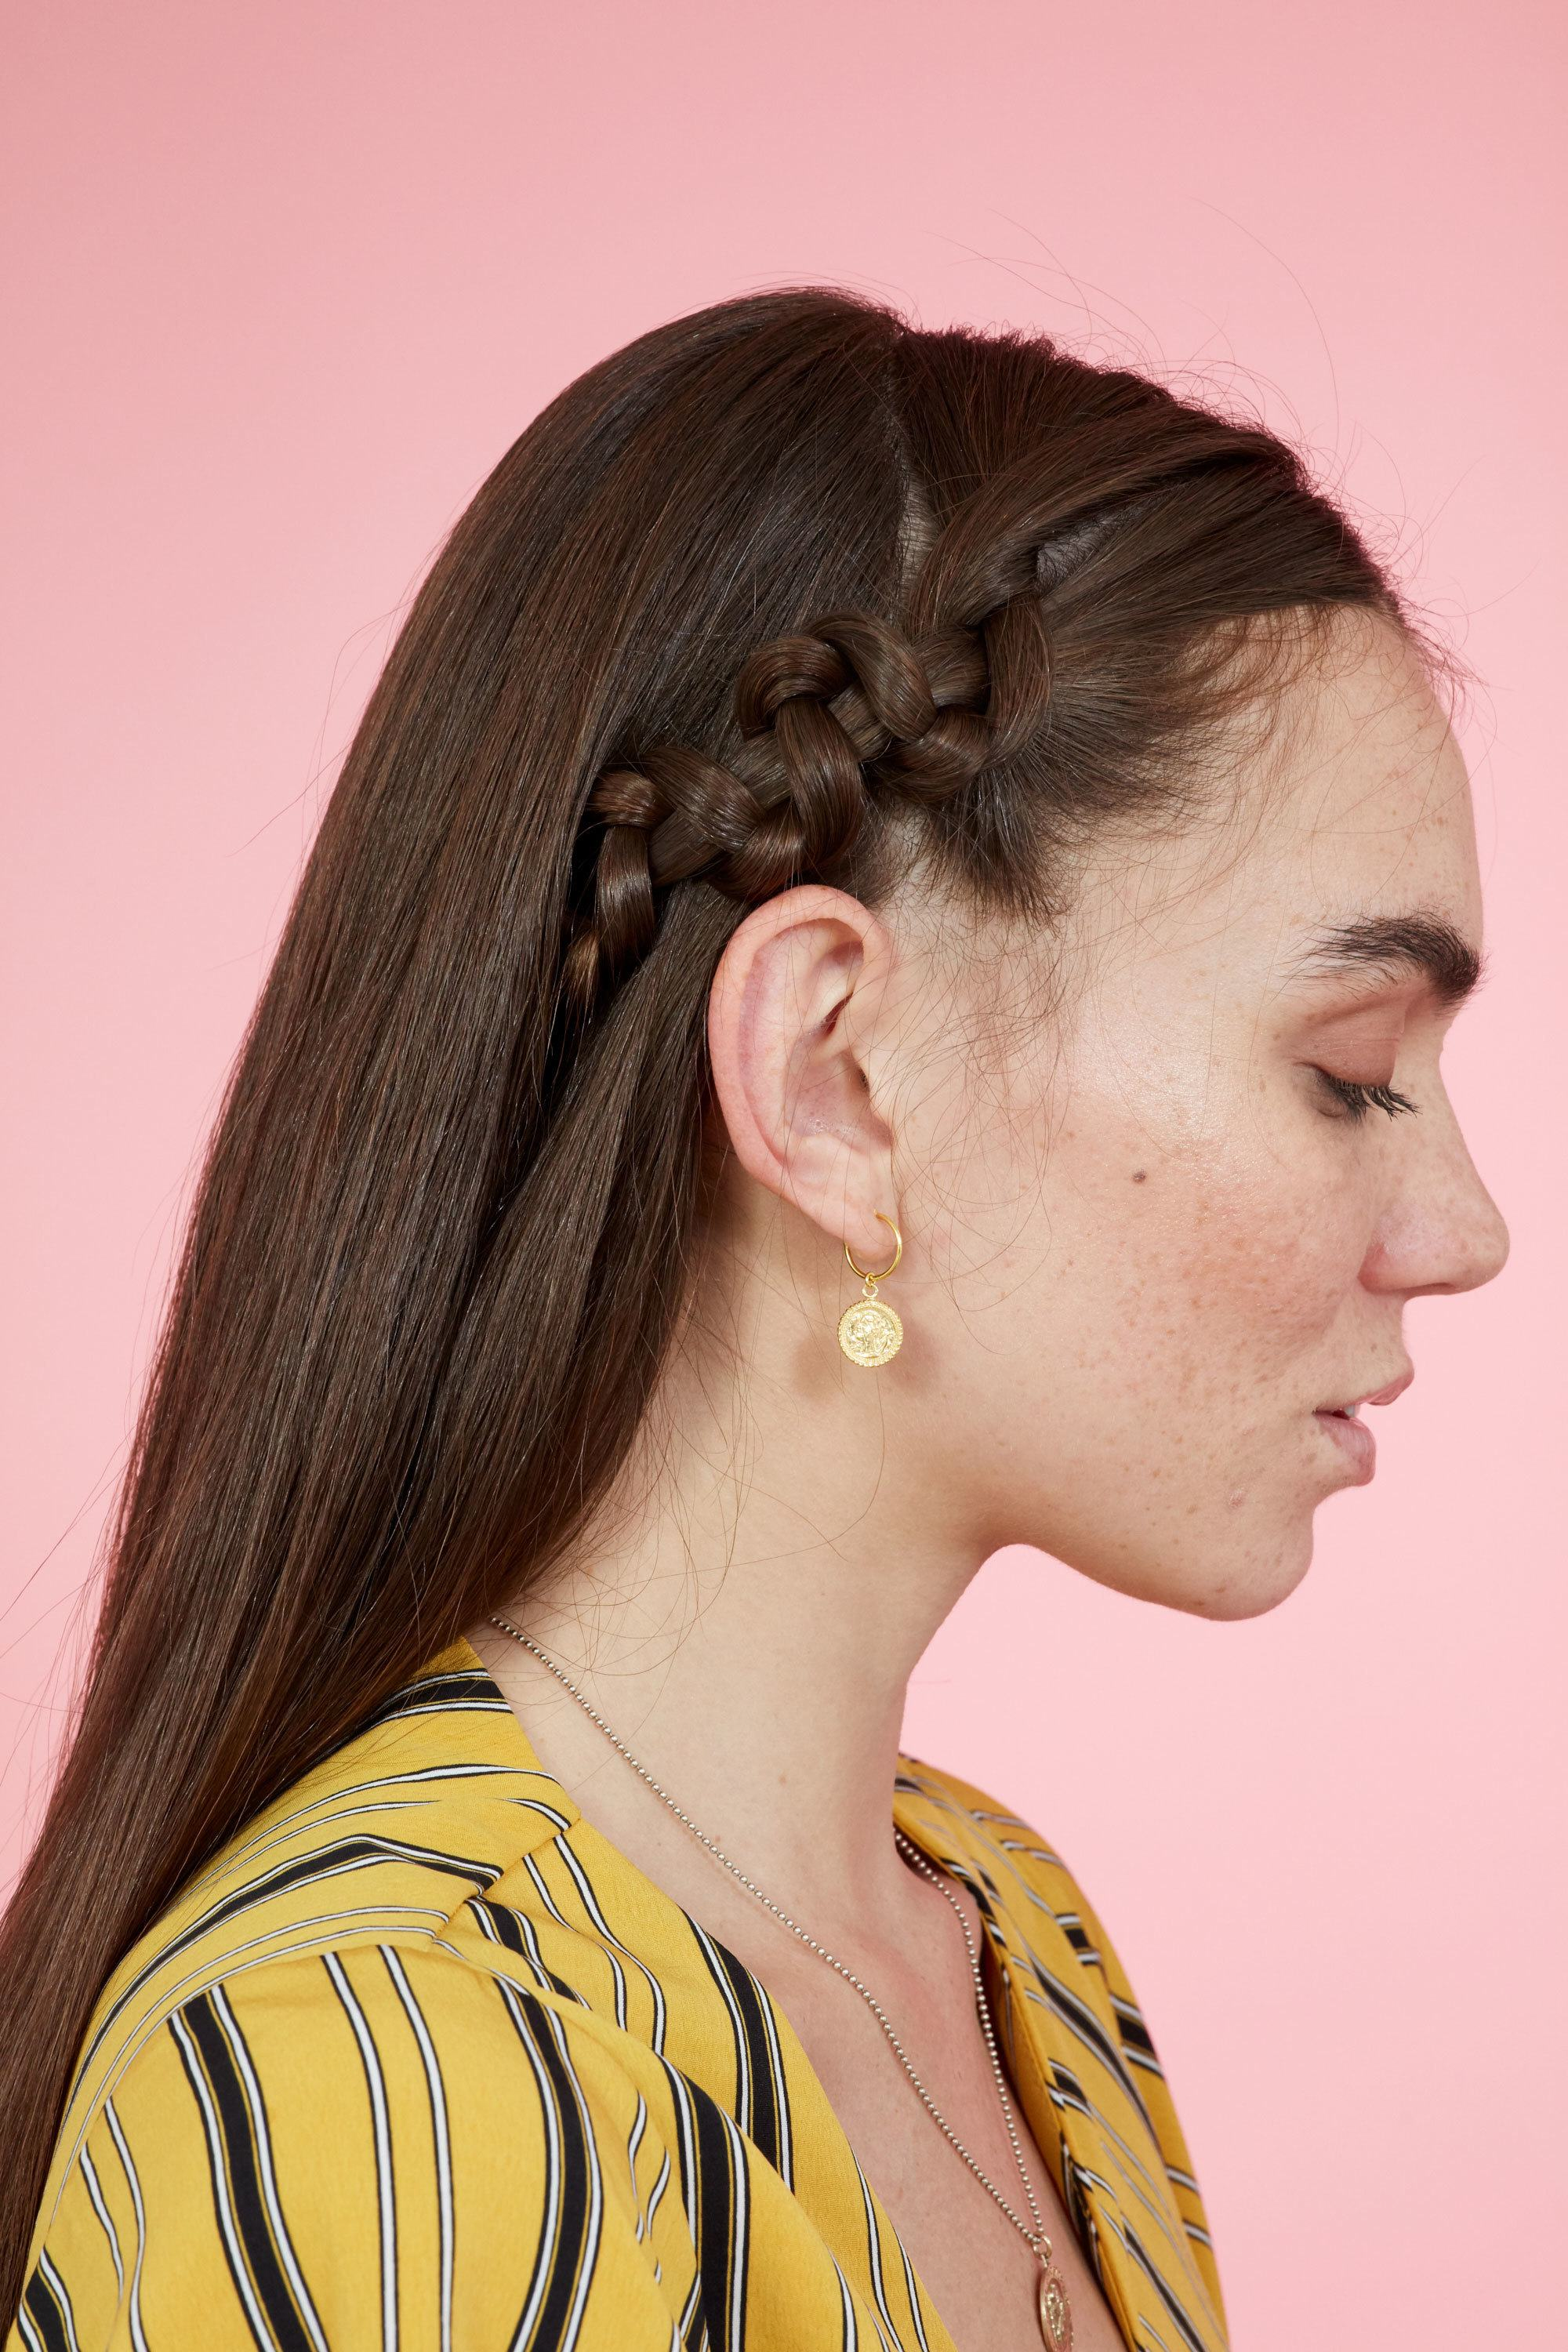 Braids for long hair: Woman with straiht dark brown hair with accent snake braid on one side wearing a yellow top against a pink backdrop.